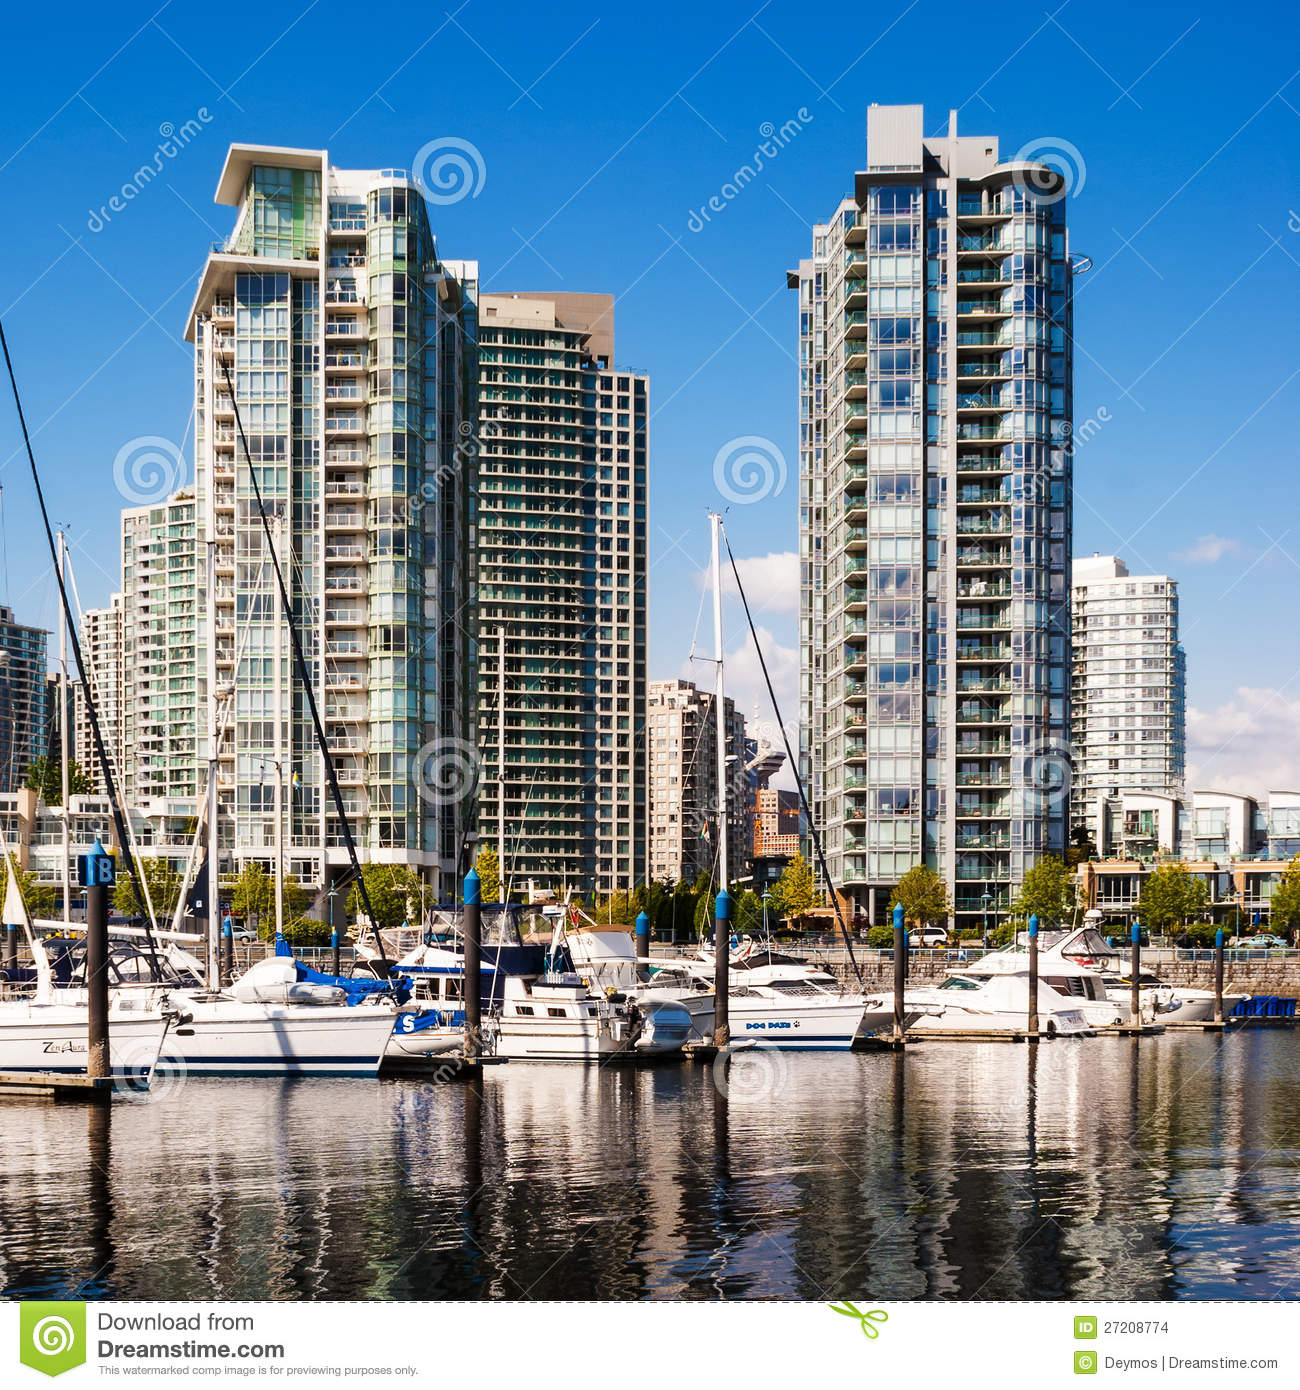 Vancouver Buildings: Yaletown Residential Buildings, Vancouver, Canada